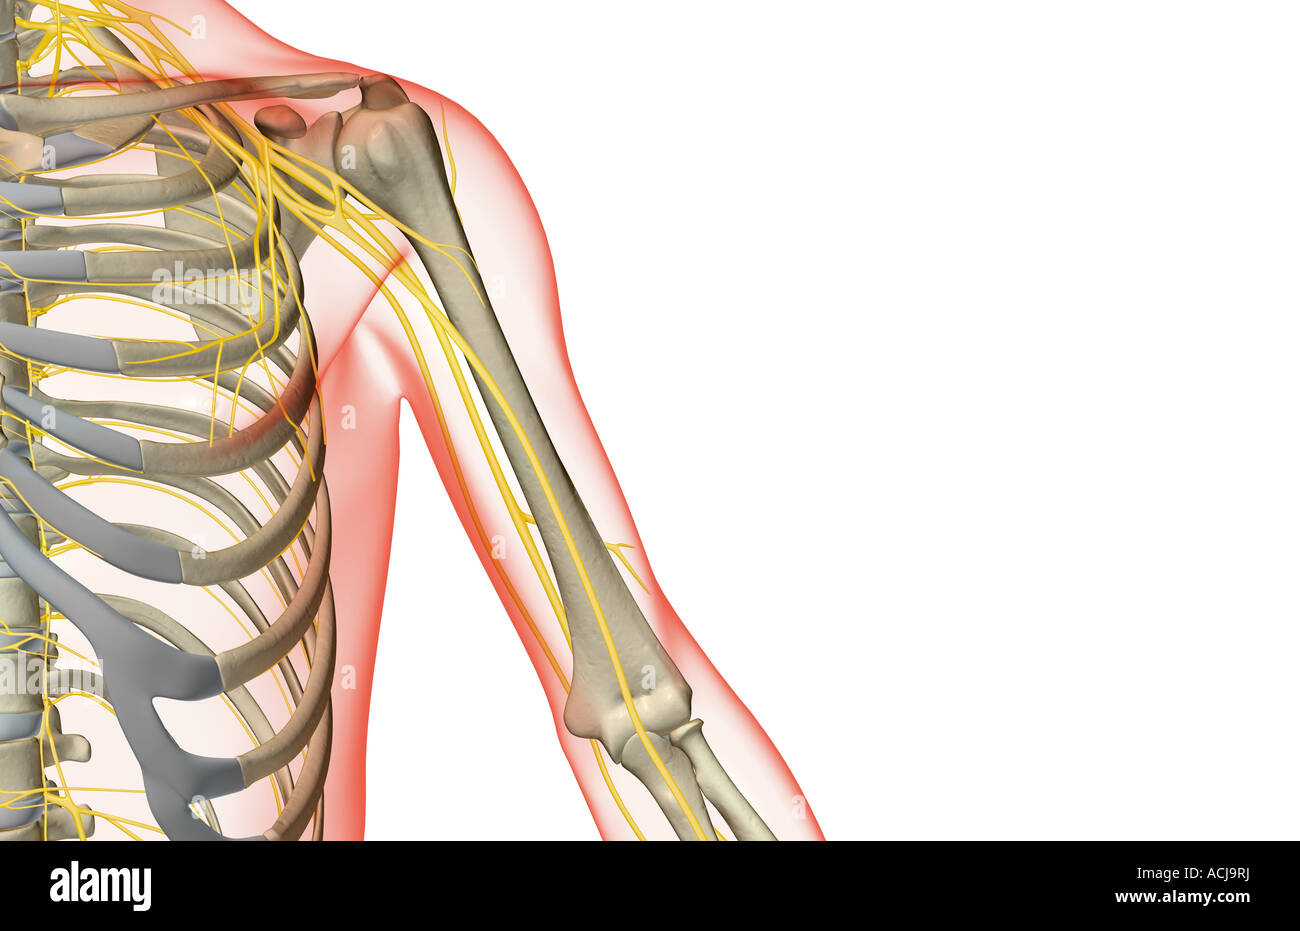 The nerves of the shoulder and upper arm Stock Photo: 13168229 - Alamy